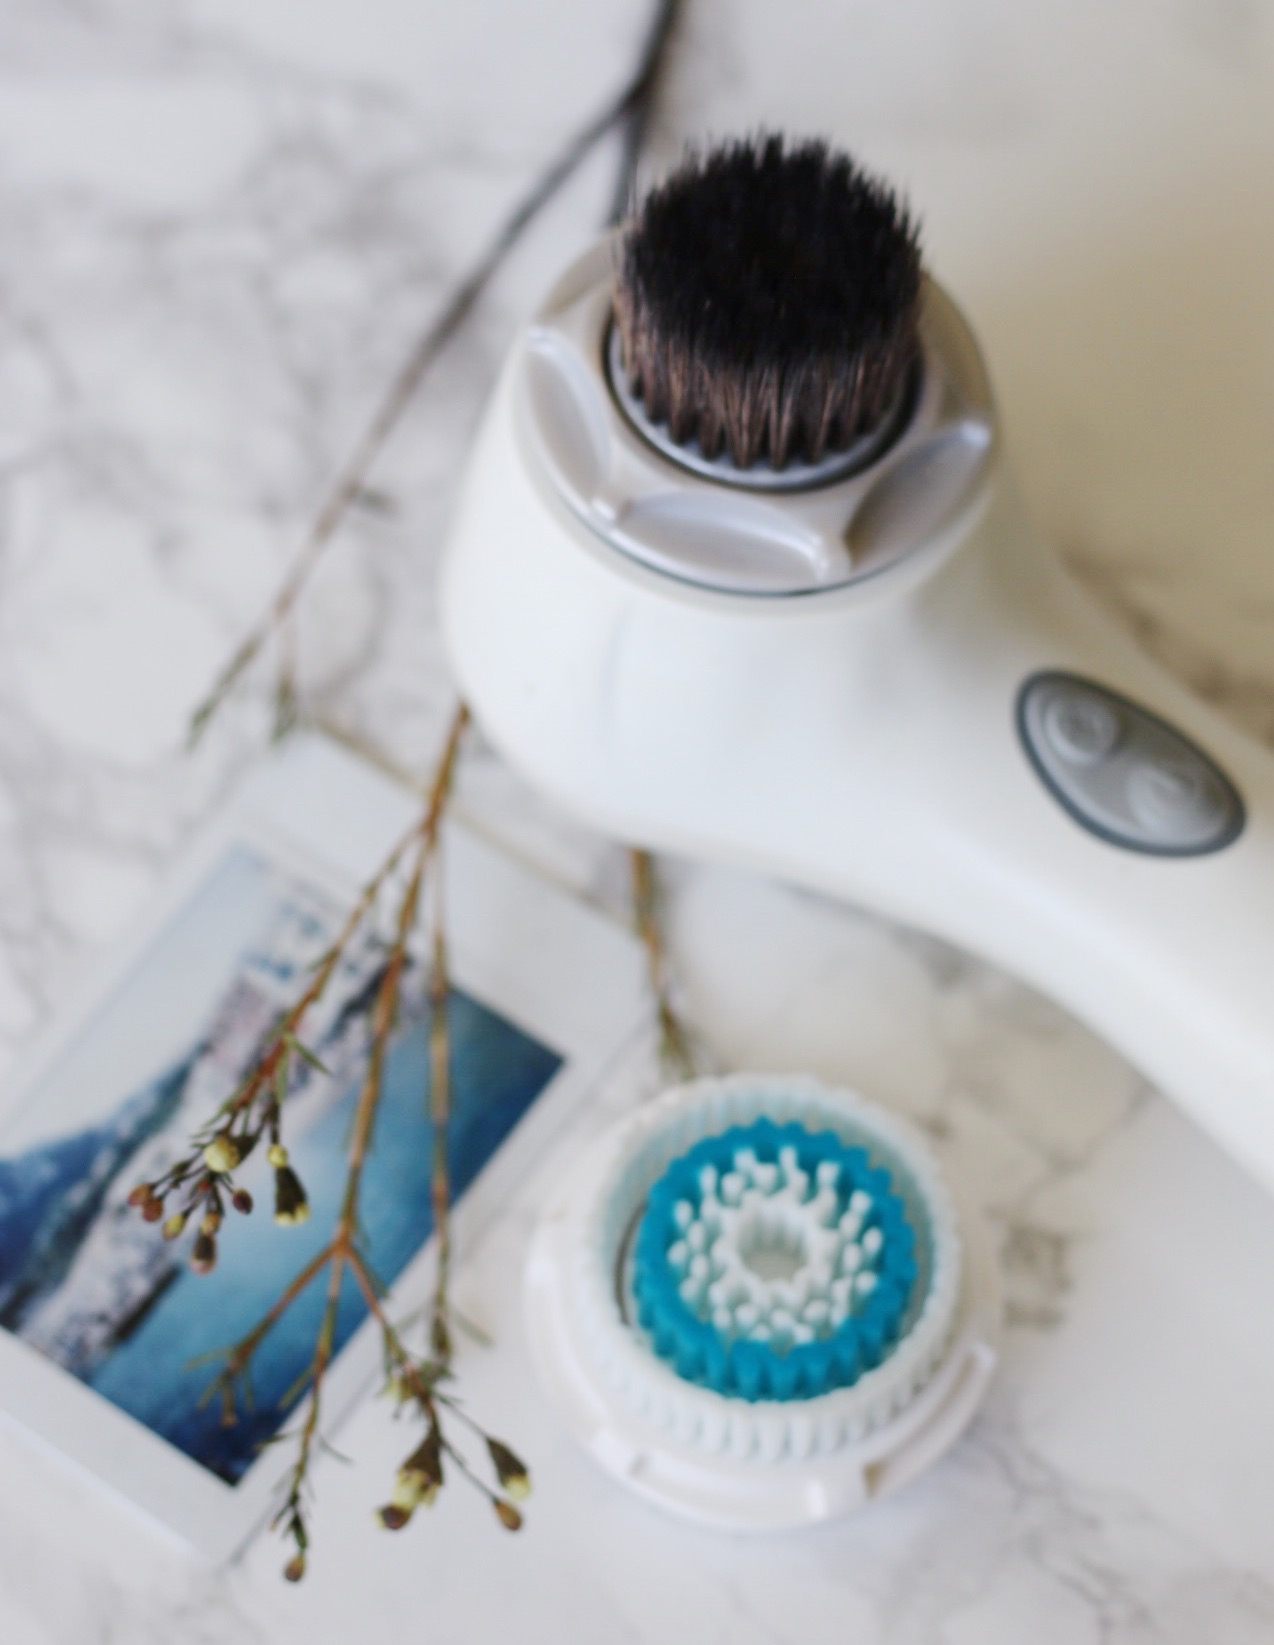 CLARISONIC FOUNDATION BRUSH REVIEW